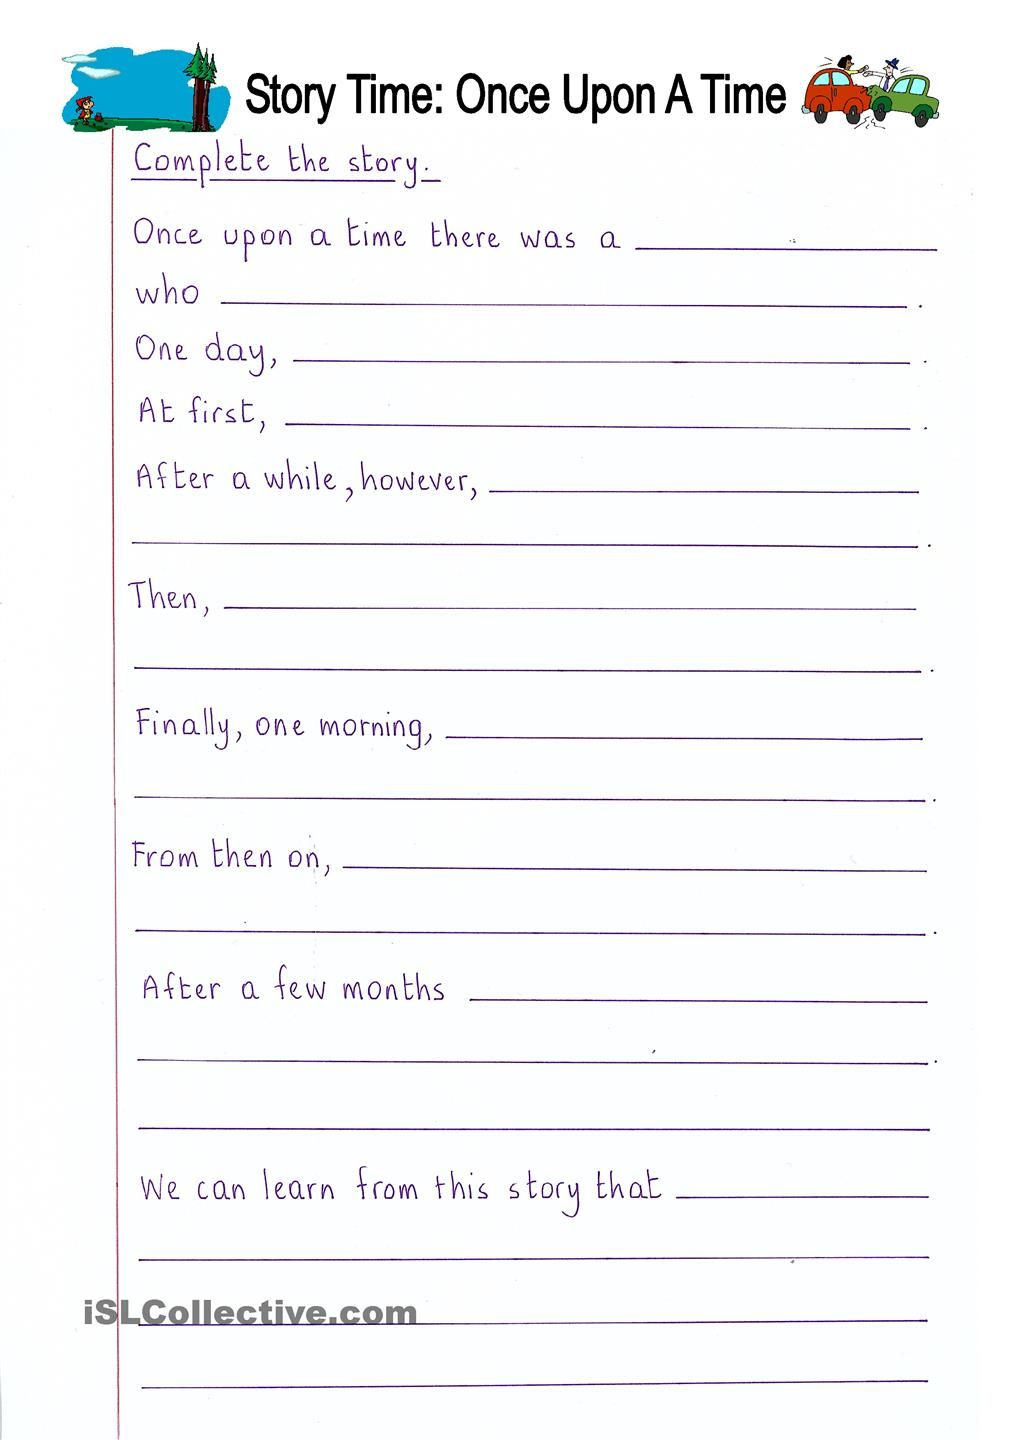 worksheet Esl Writing Worksheets read and complete once upon a time story writing daycare worksheet free esl printable worksheets made by teachers